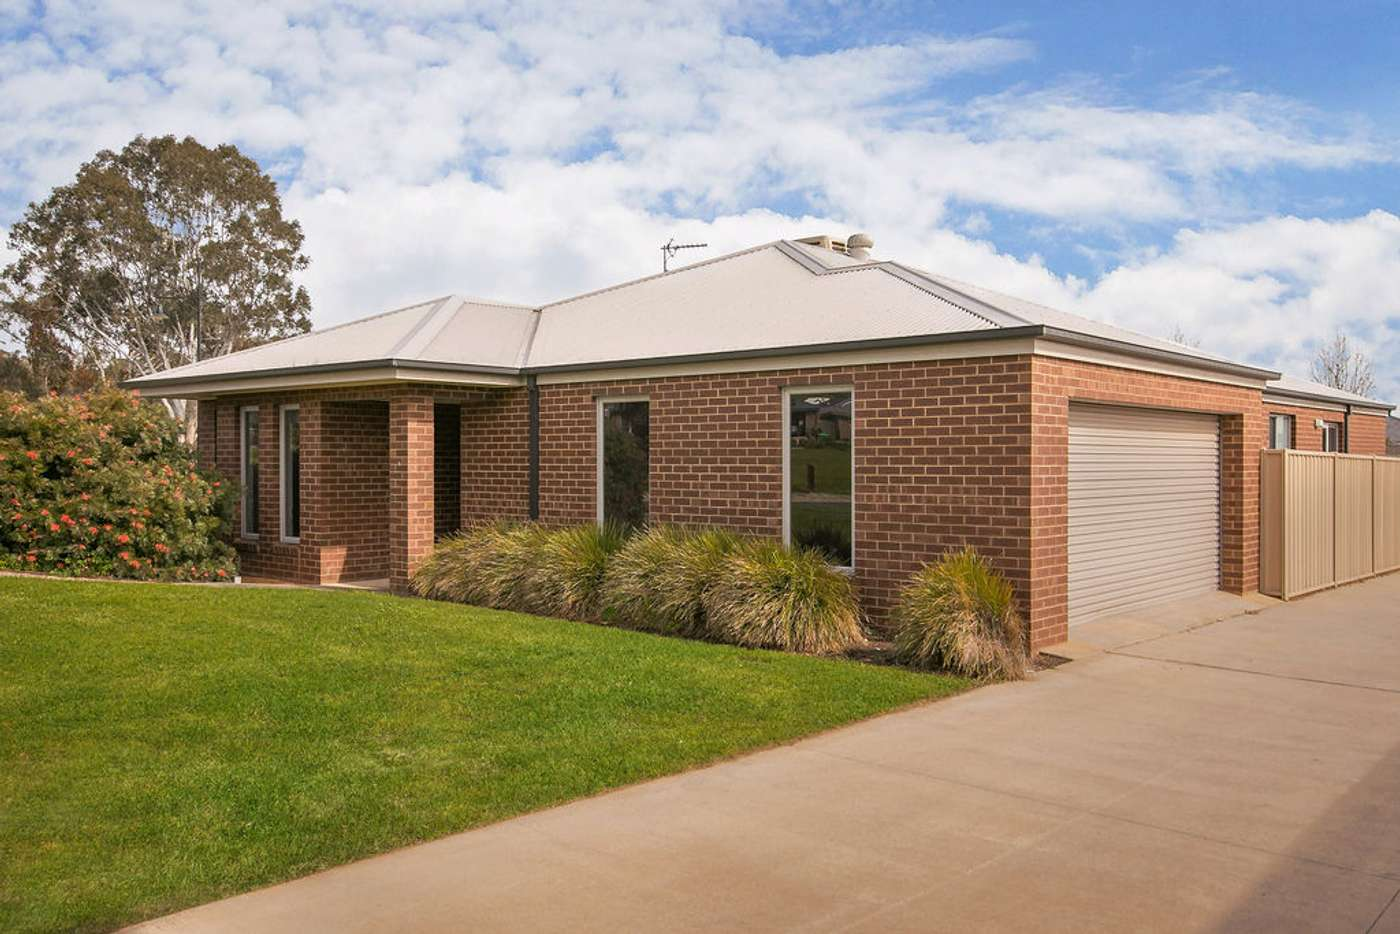 Main view of Homely house listing, 24 Jacka Street, Wodonga VIC 3690